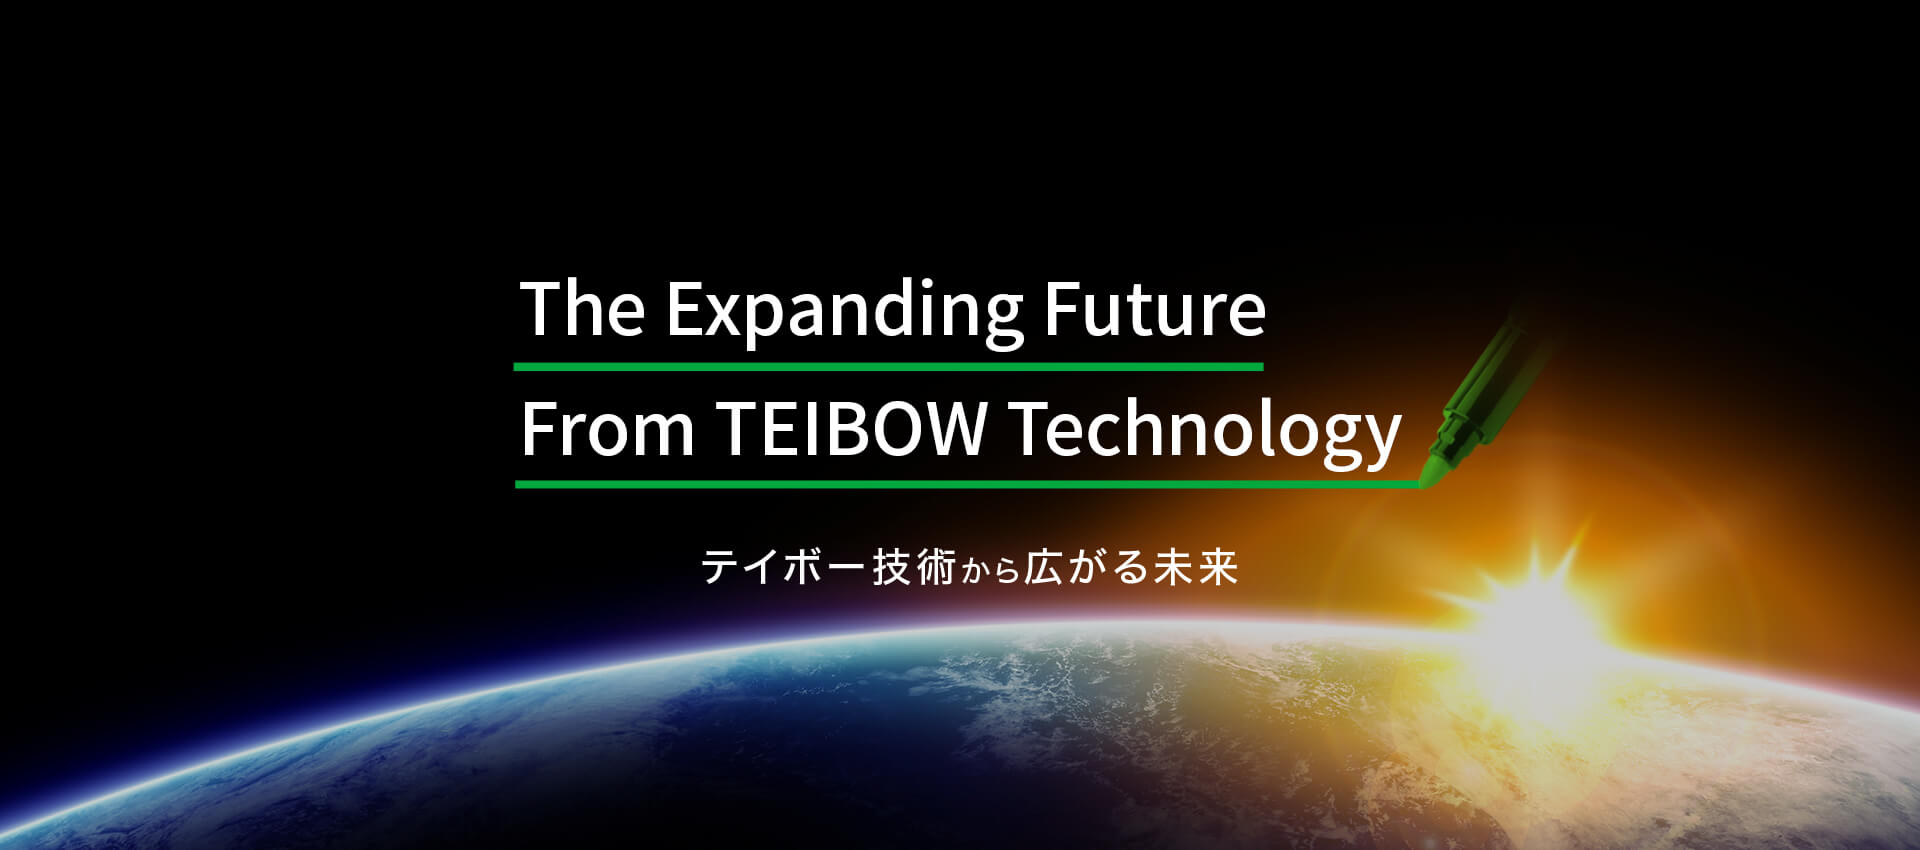 The Expanding Future From TEIBOW Technology テイボー技術から広がる未来